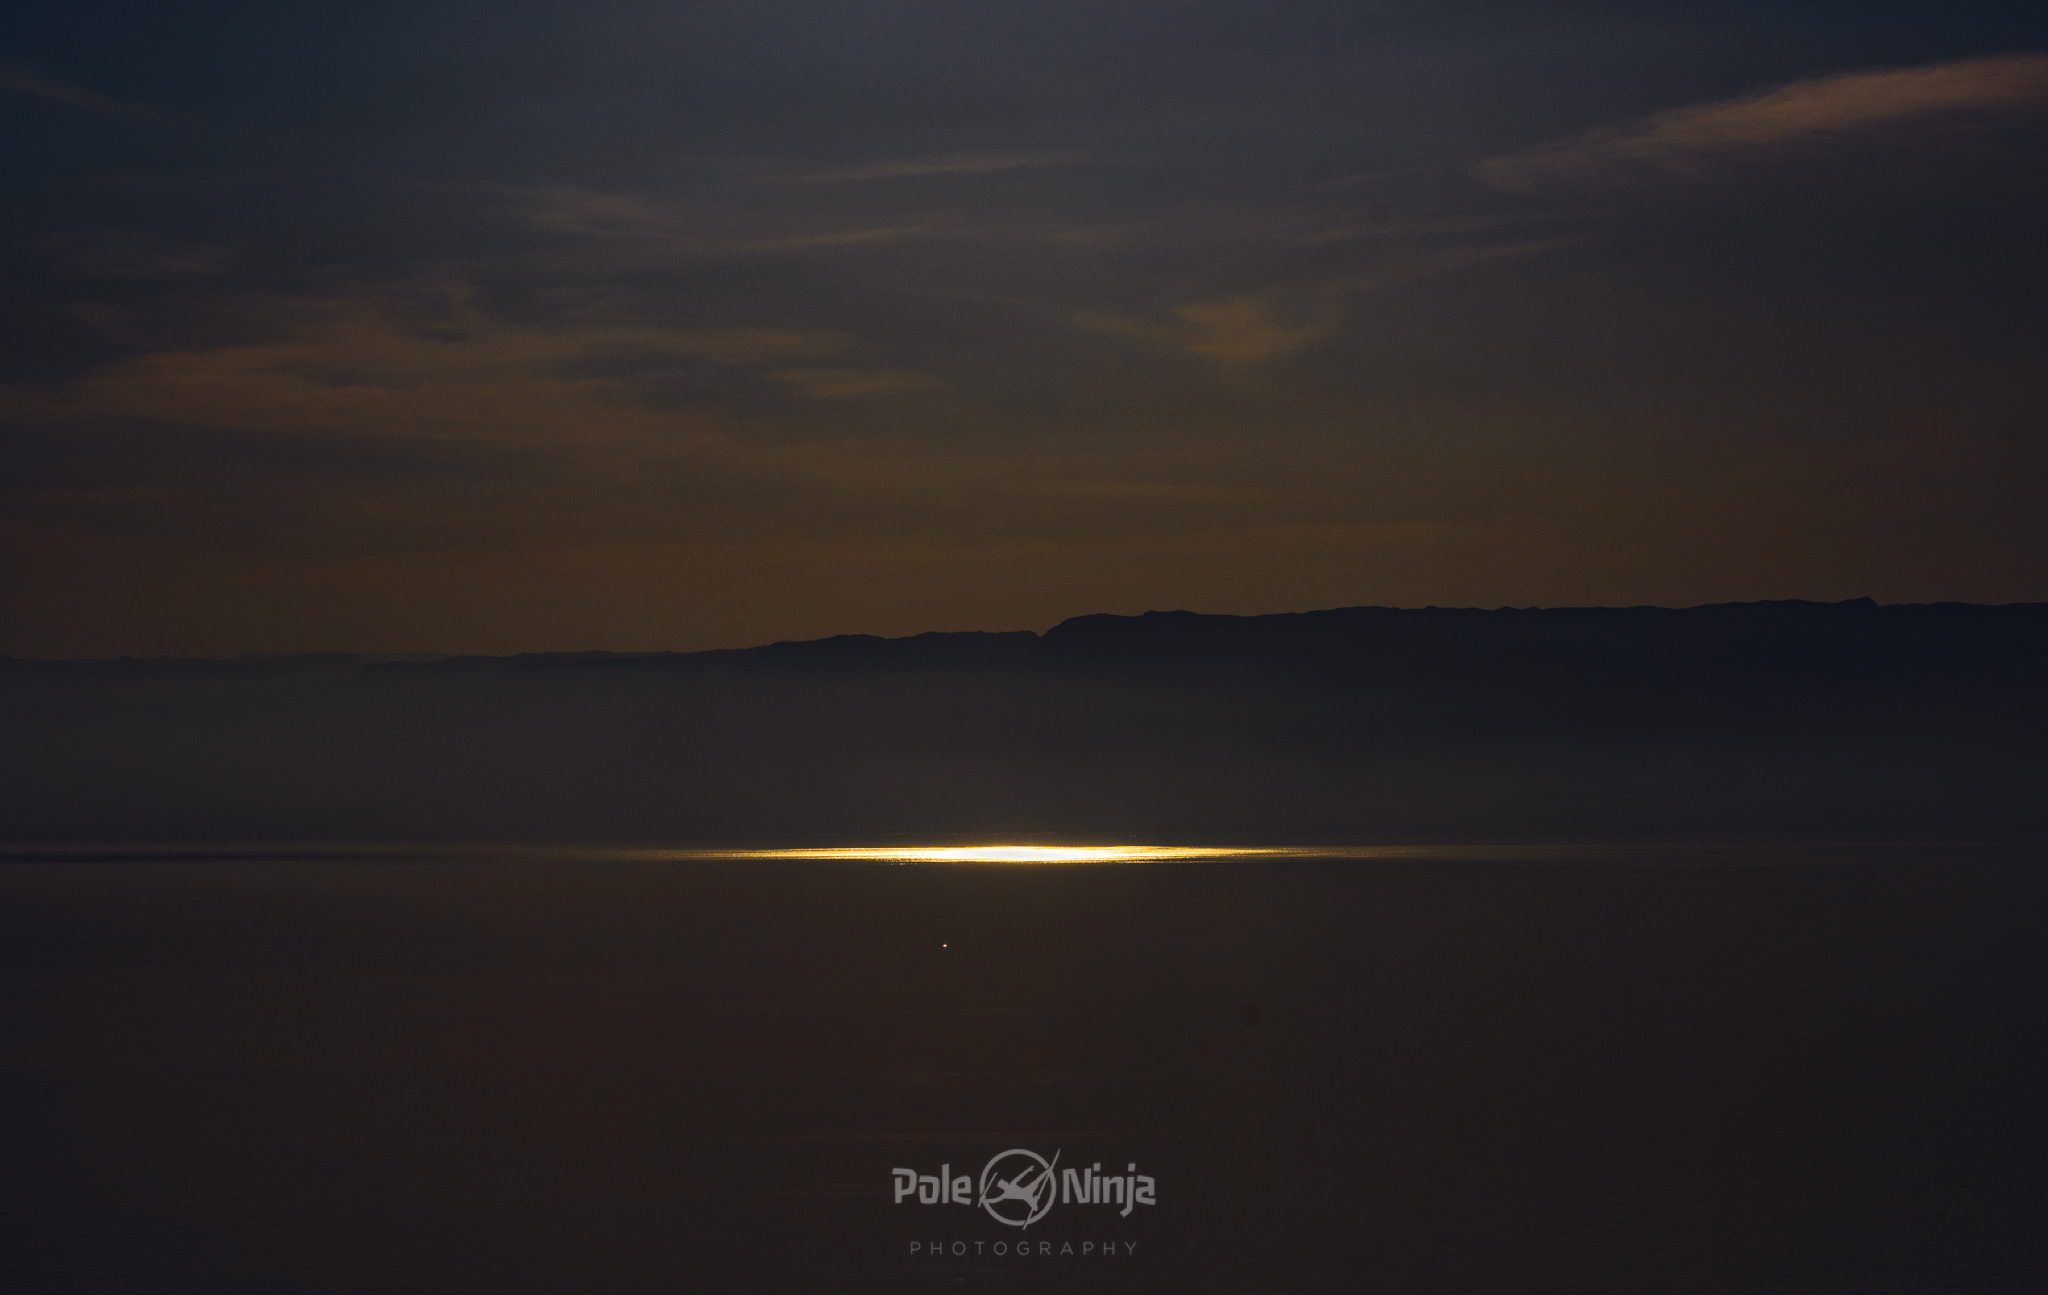 And the Dead Sea, reflecting the sun, as we race toward the sea before sunset